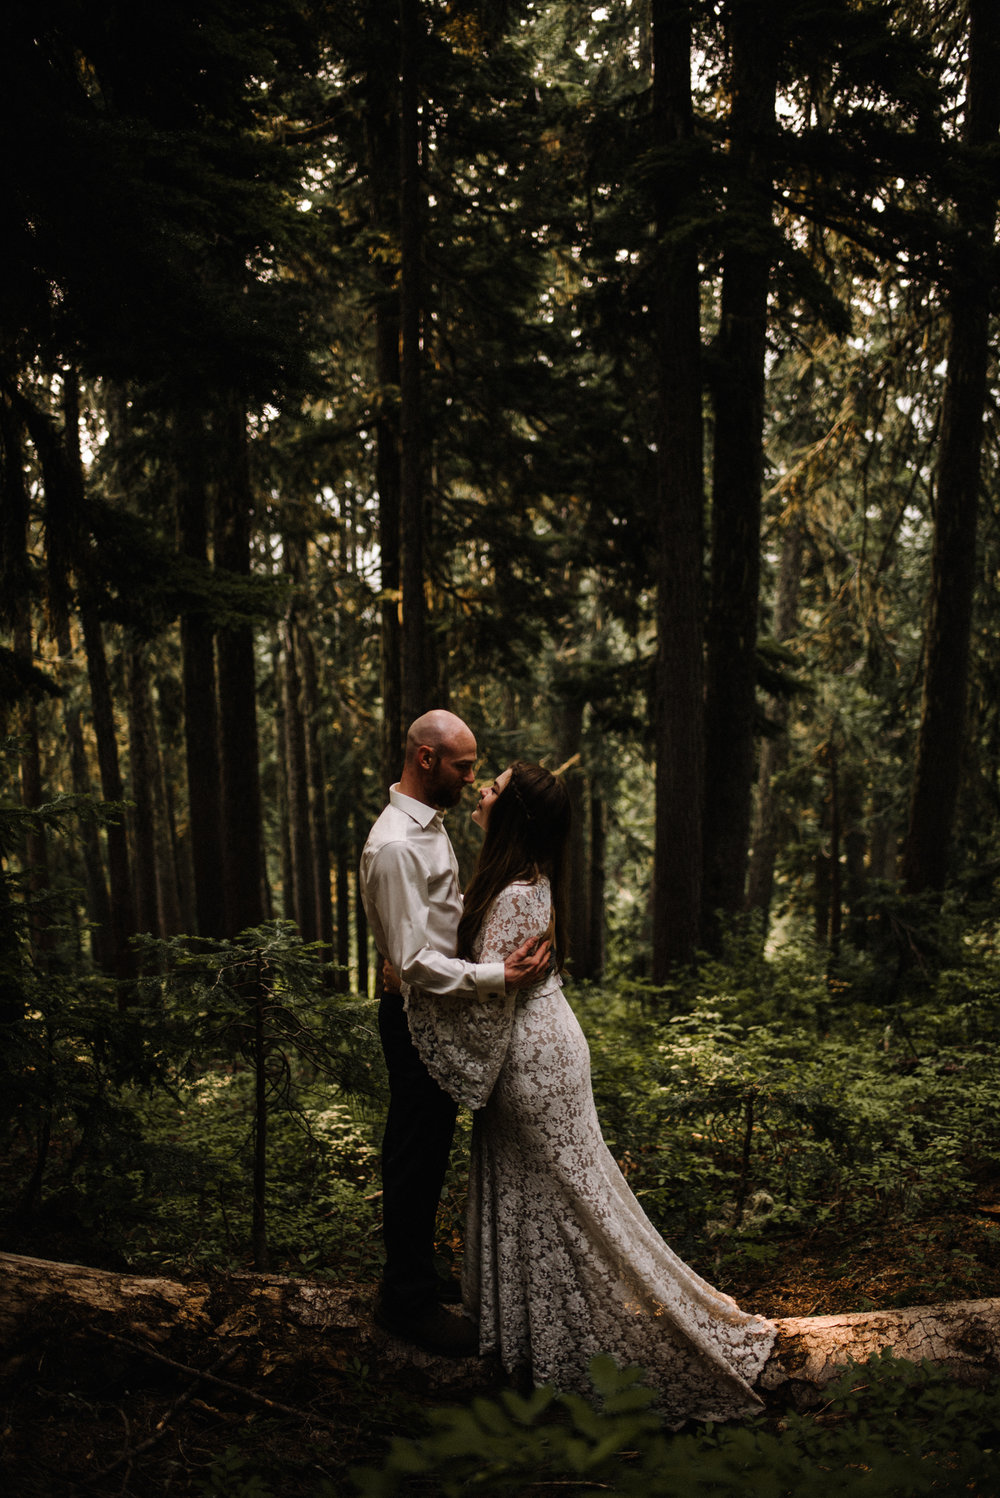 Megan and Andrew Lake Valhalla Washington PNW Adventure Elopement White Sails Creative Sunrise Hike_22.JPG